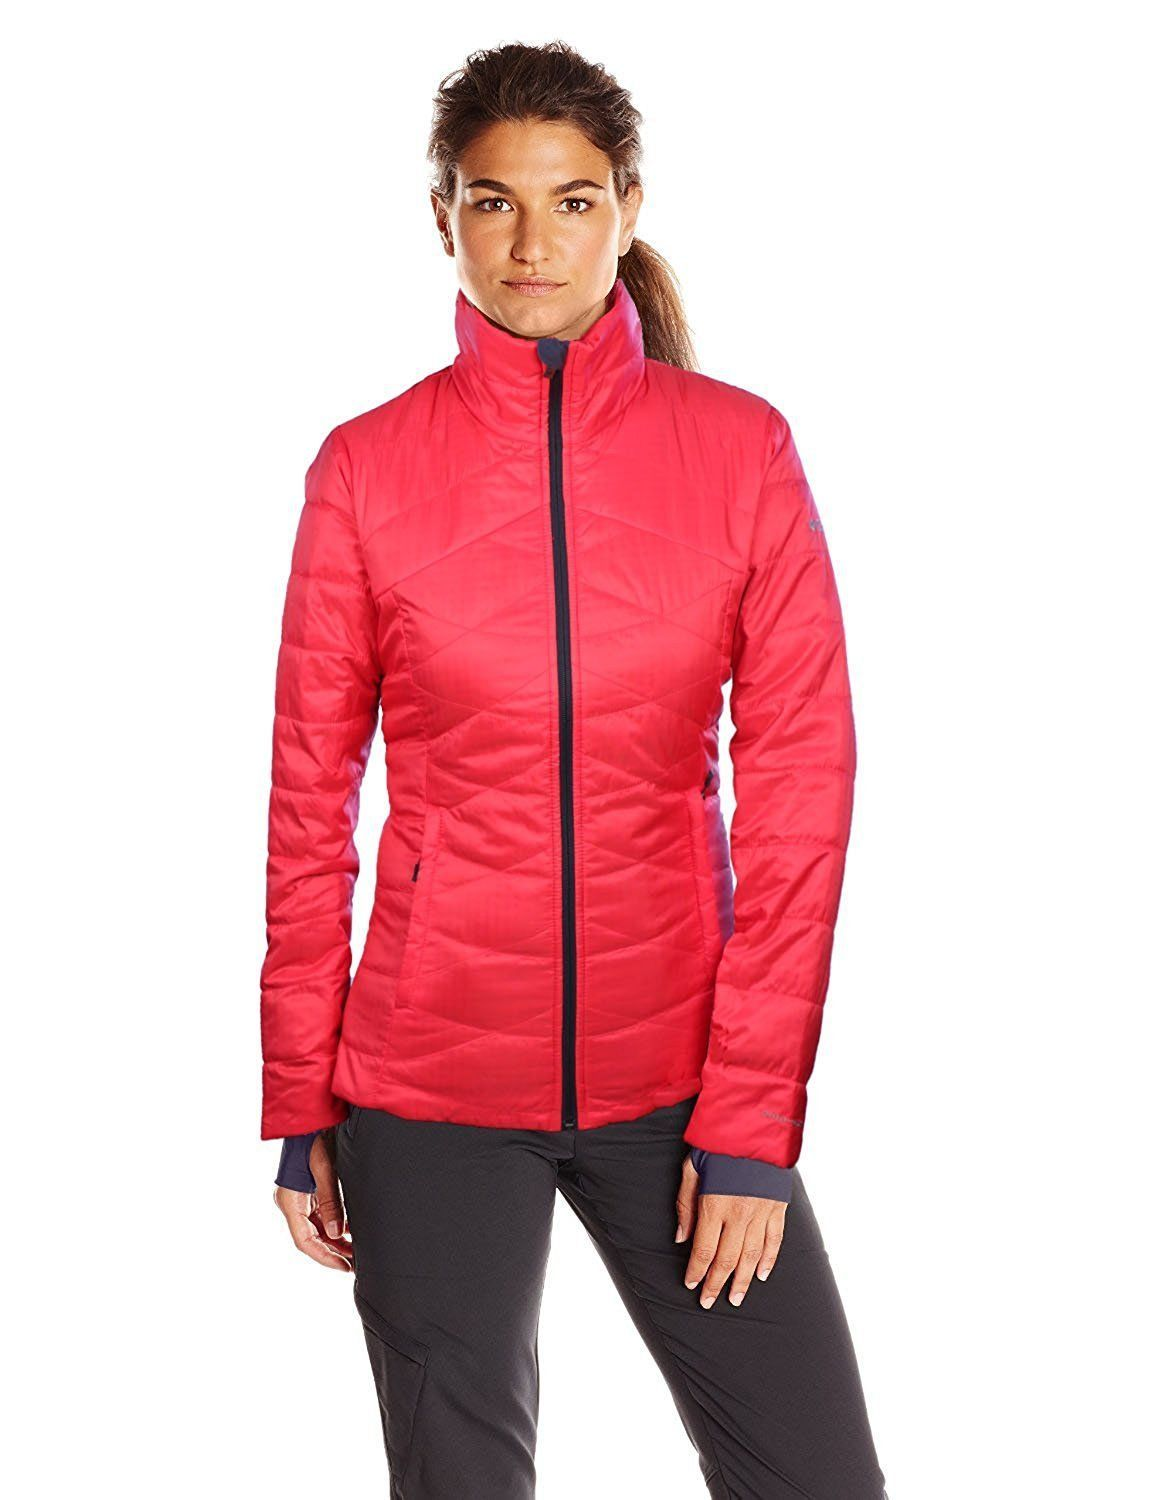 new columbia women New columbia morning light omni-heat insulated jacket womens m white this beautiful jacket is lightweight but warm, due to the omni-heat lining and insulation.